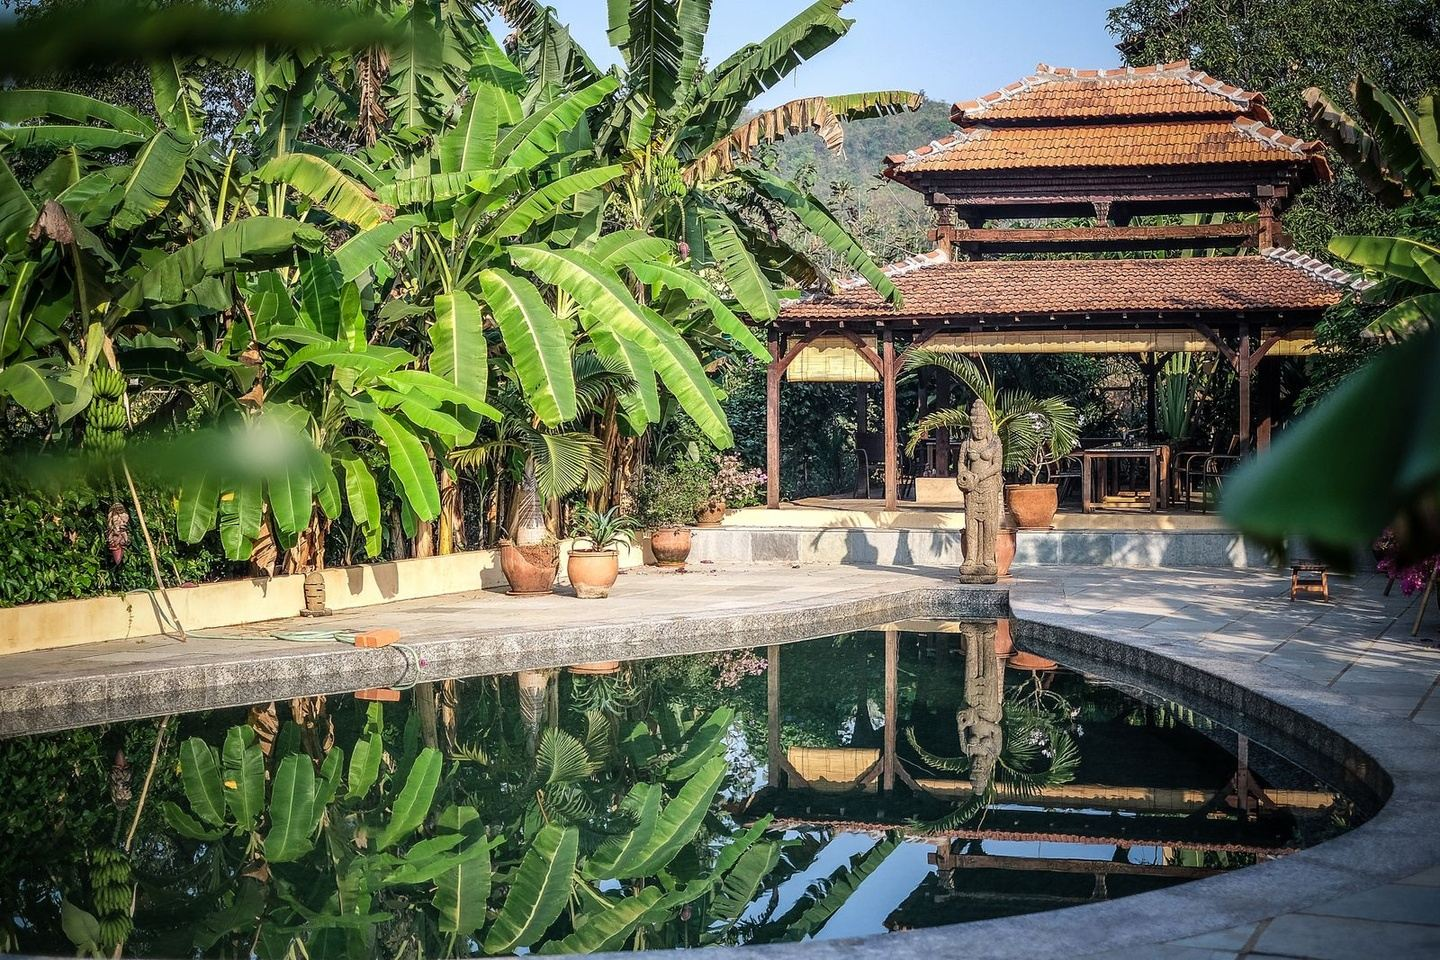 Heal your Body, Feed your Soul at Samata Goa India